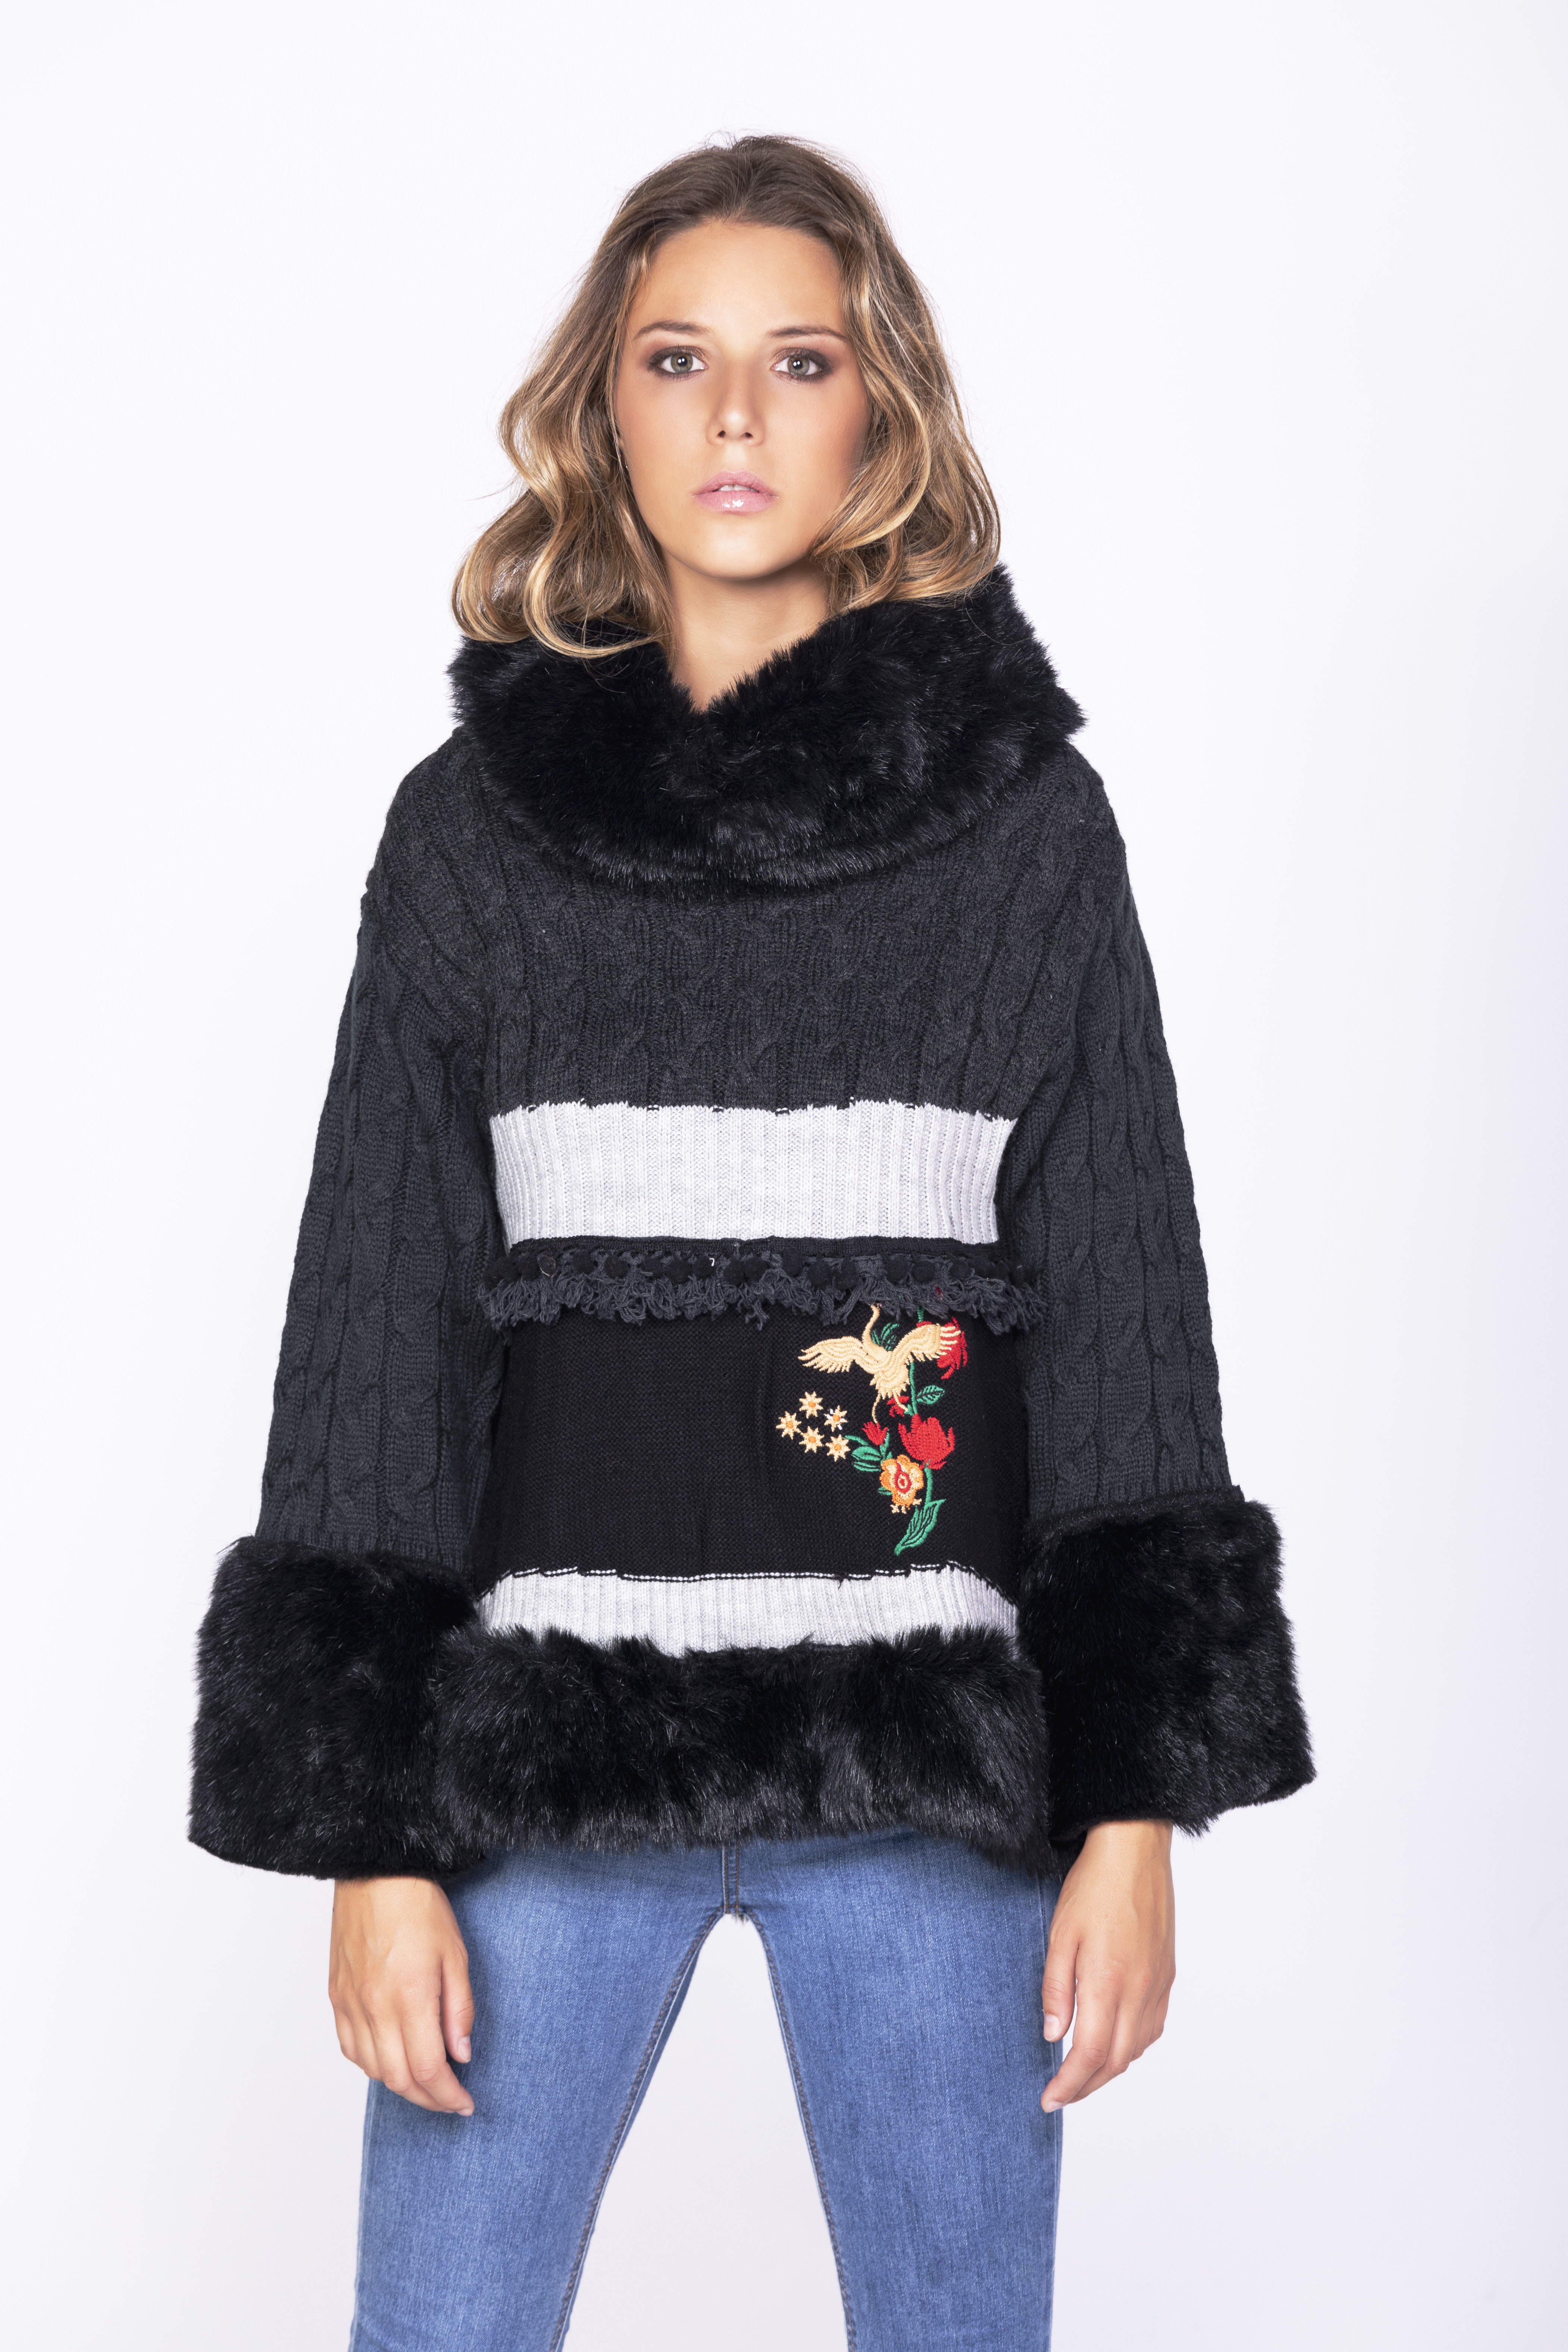 Savage Culture: Little Red Rose Embroidered Faux Fur Sweater Rostov